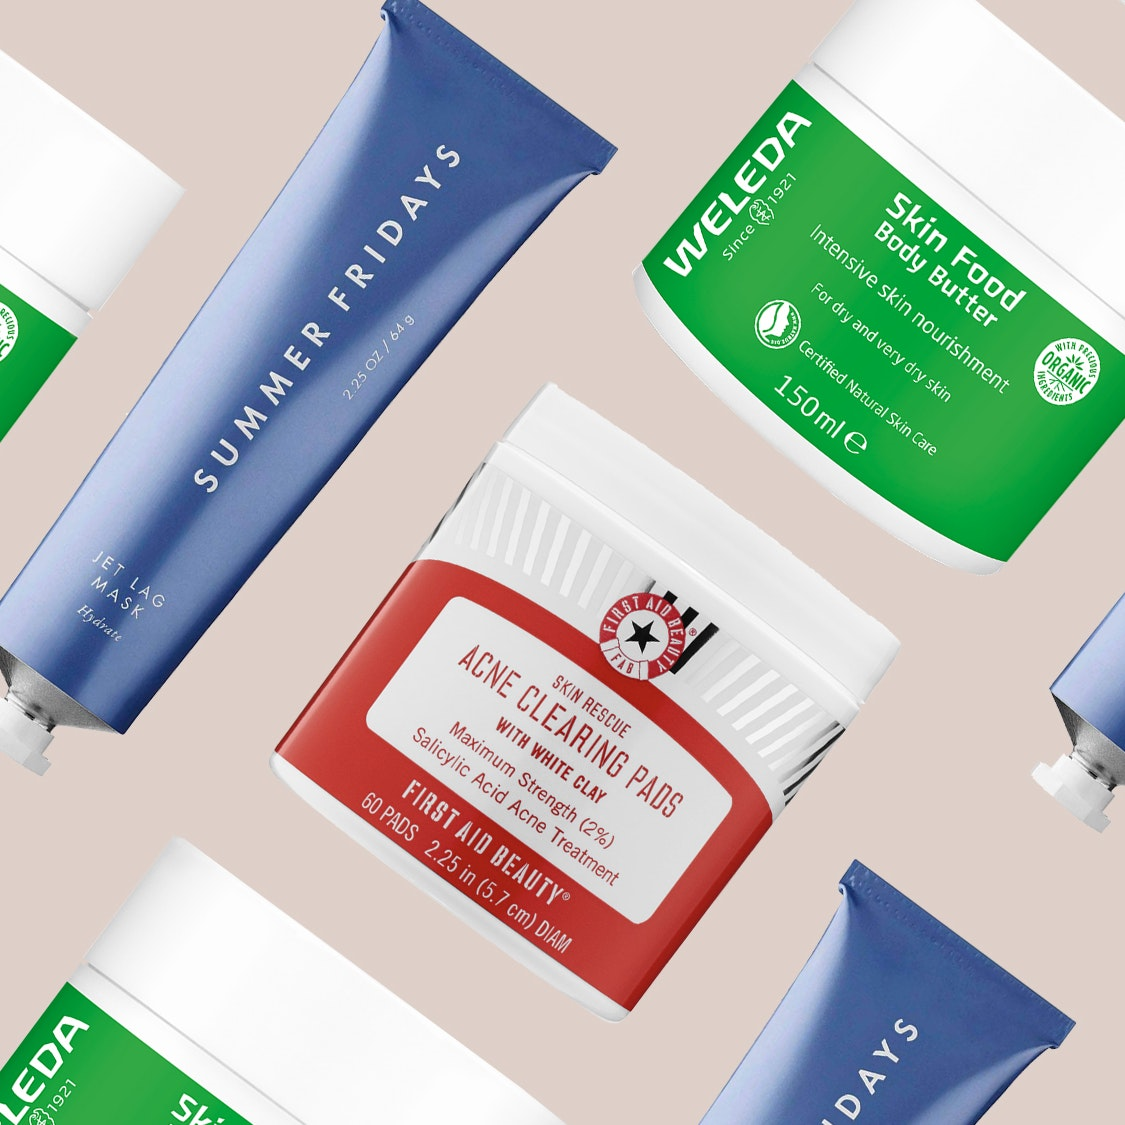 CEW Revealed Its 2019 Beauty Award Winners — Here Are 15 of Spotlyte's Favorites